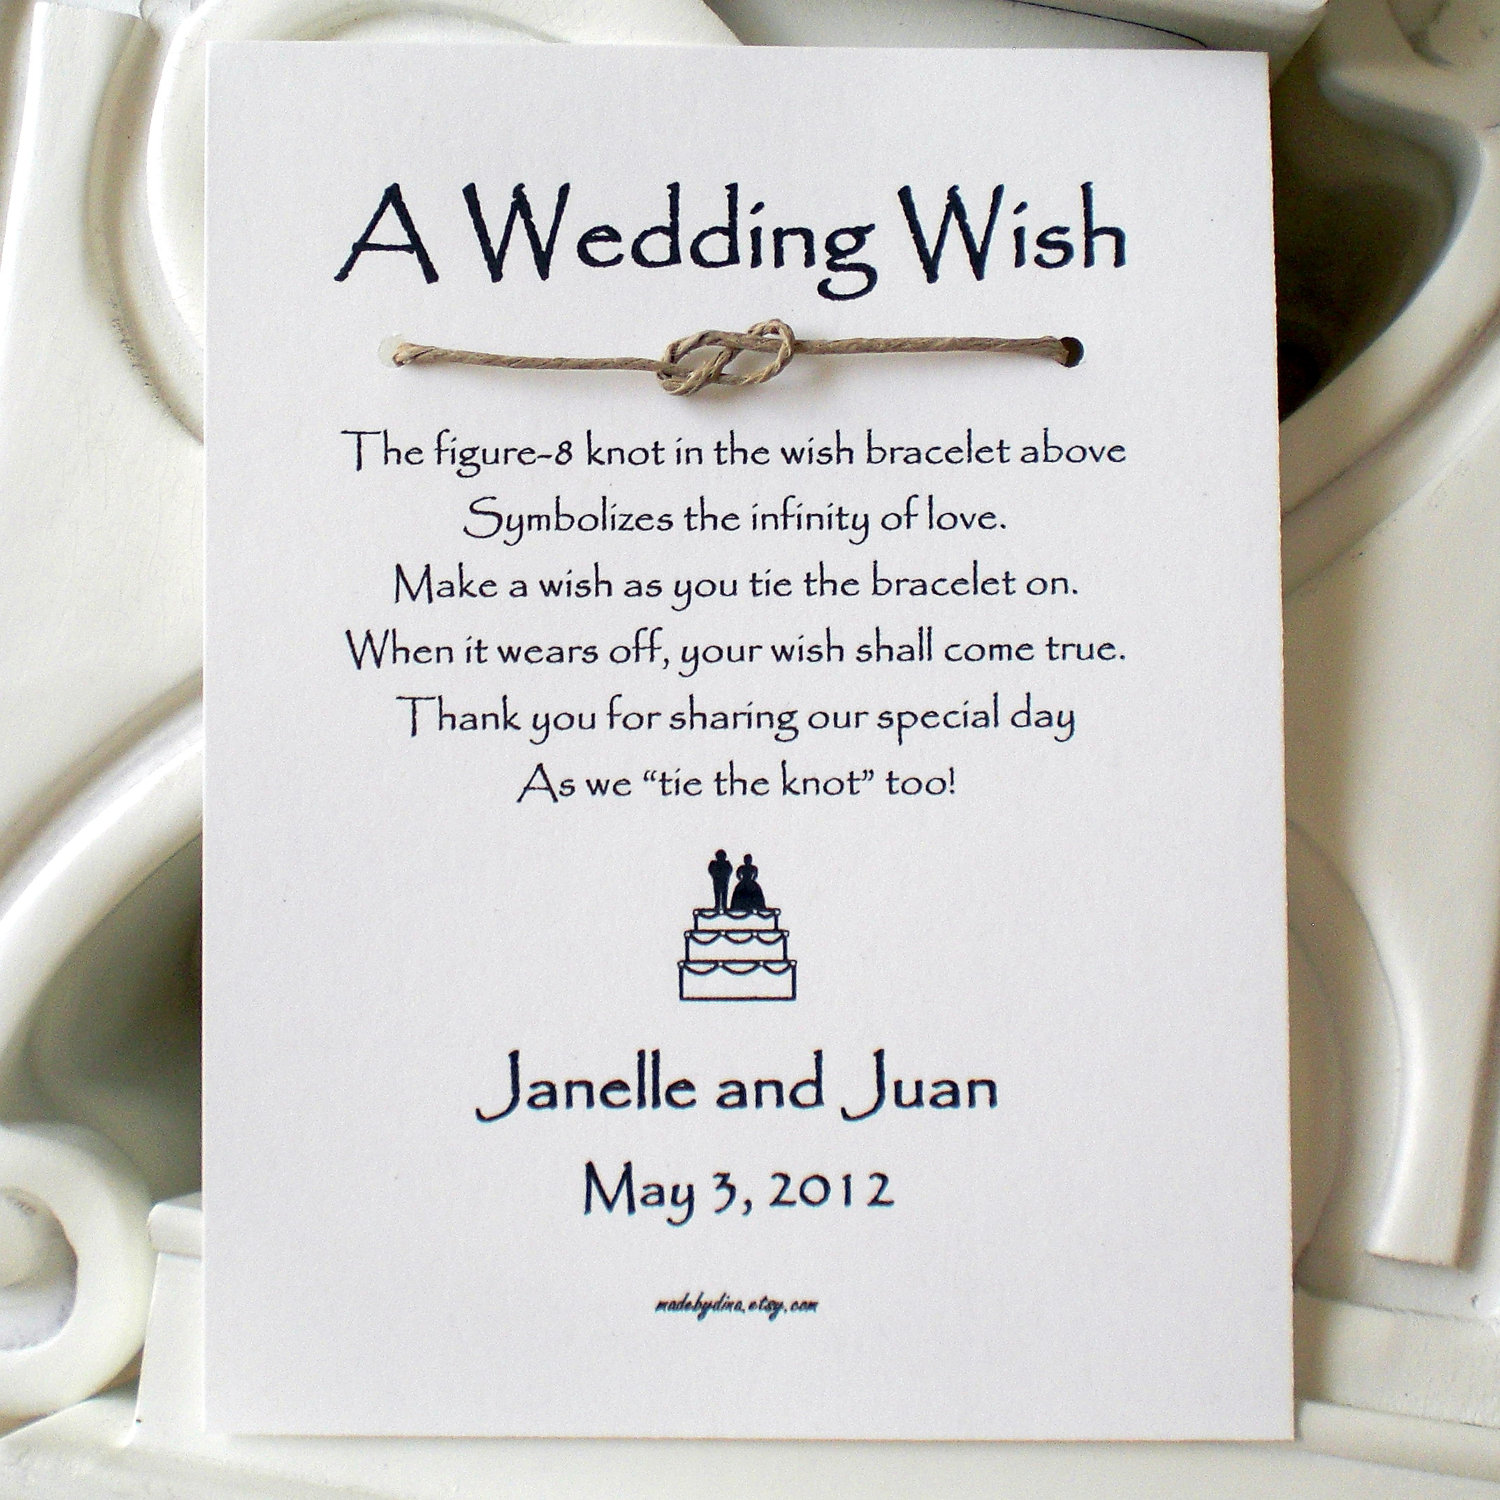 Wedding Card For My Best Friend Wedding Invitation Sample – Quotes for Wedding Cards to a Friend